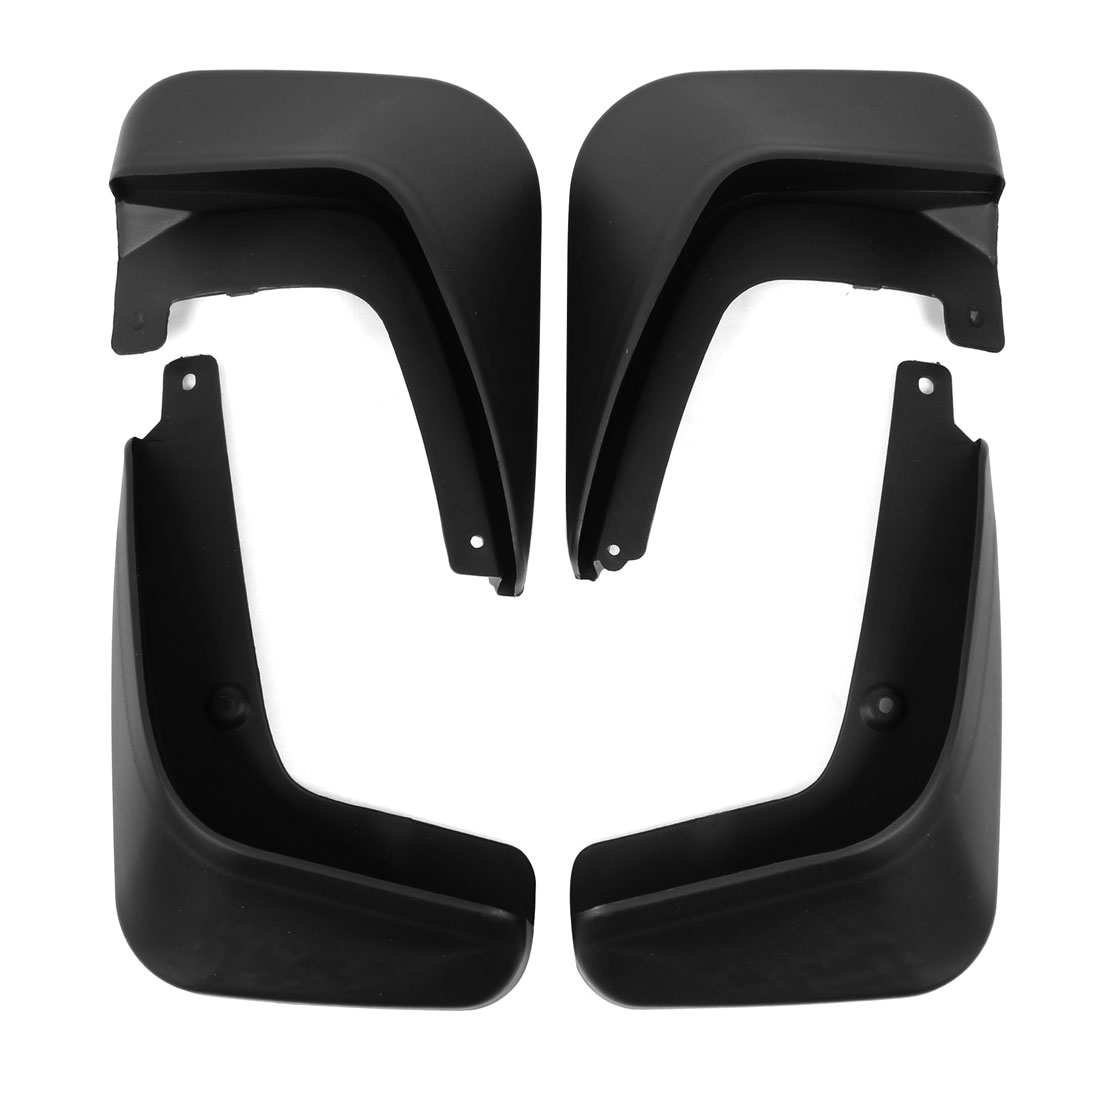 New Mudguard Splash Guards Mud Flap 4Pcs Set Black for Emgrand